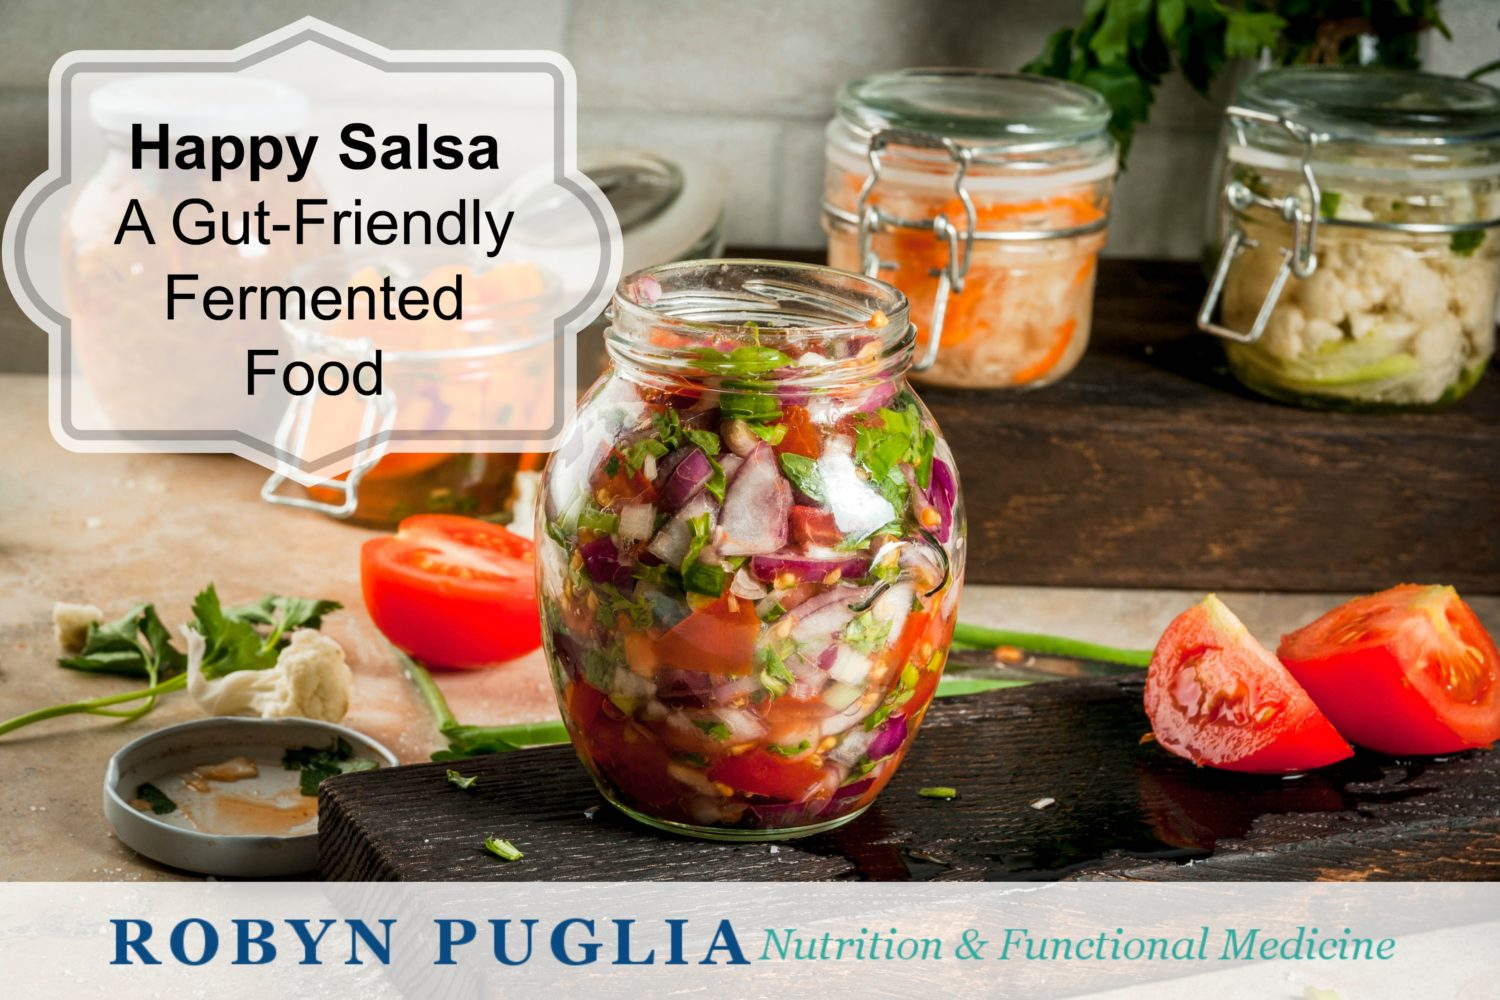 Happy Salsa. A gut-friendly fermented food